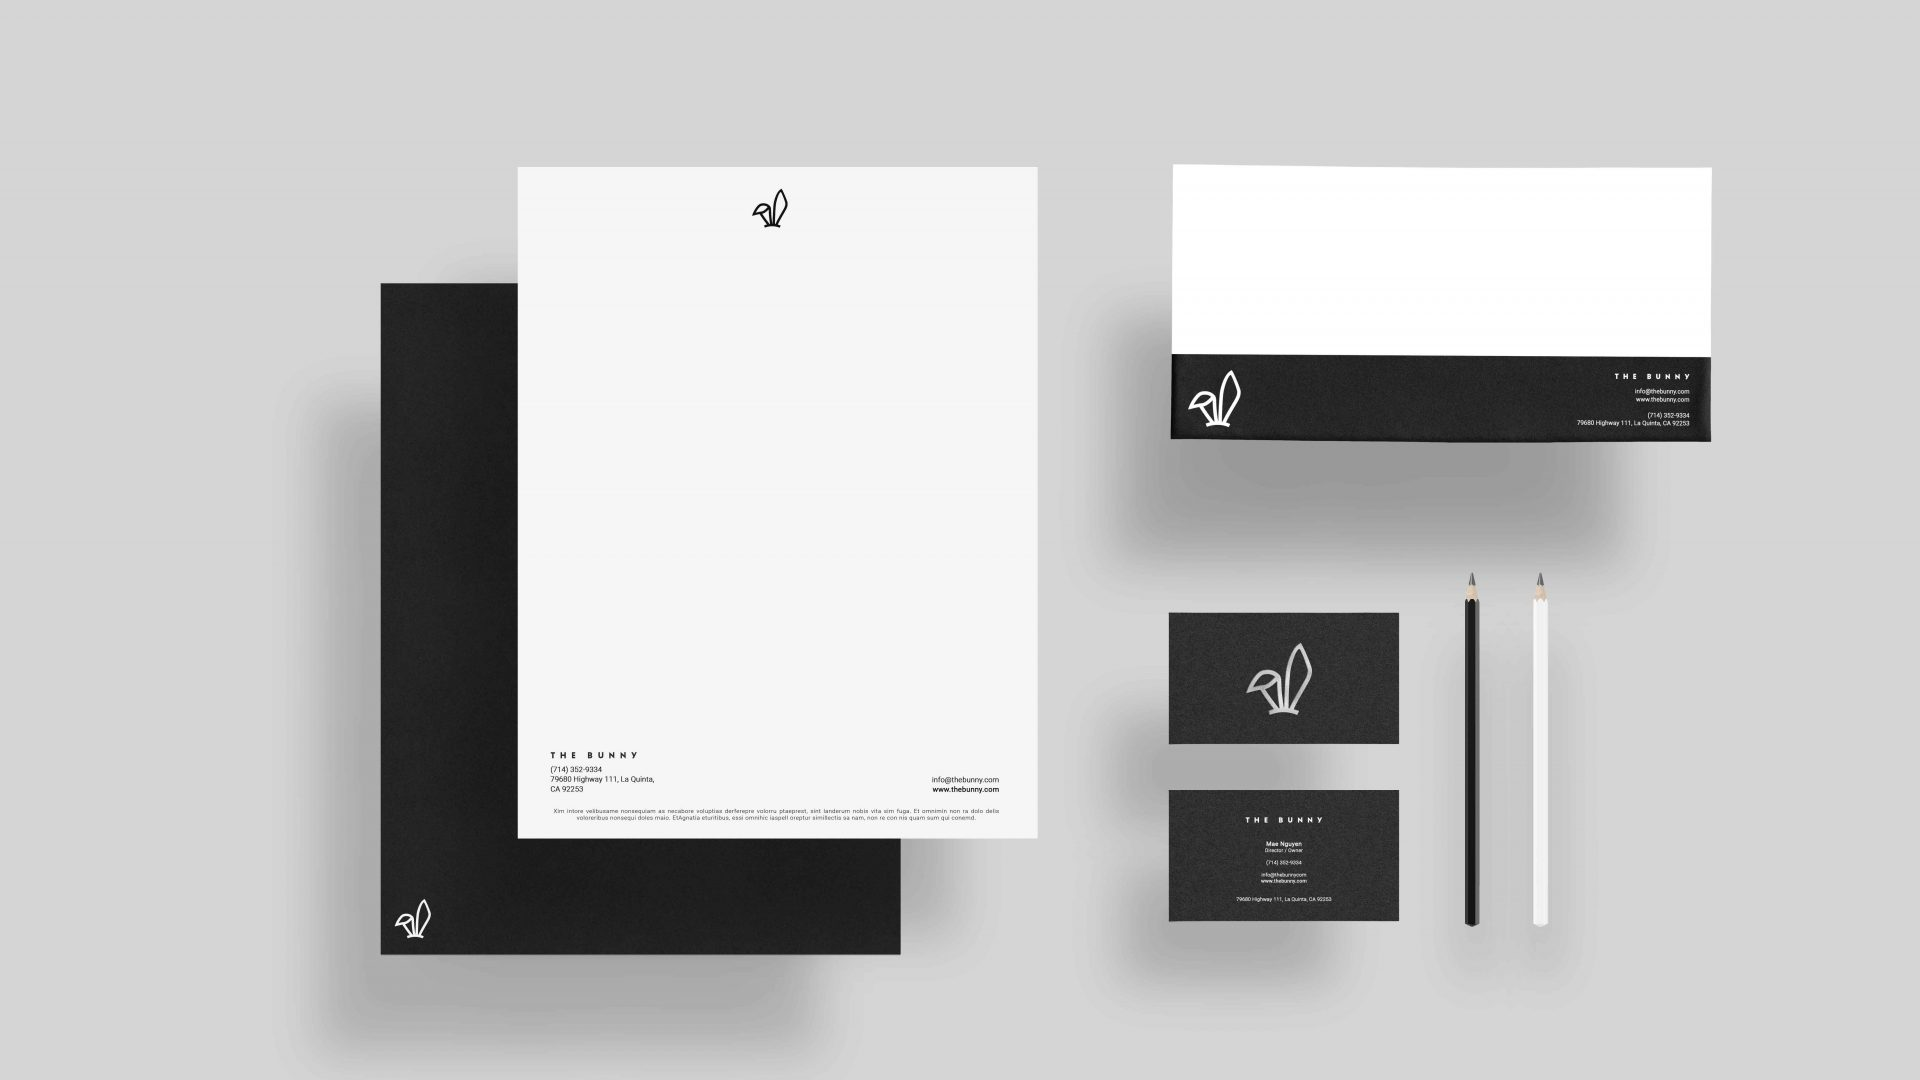 Brand identity design by Crate47. The Bunny bubble tea logo and marque used on stationery.